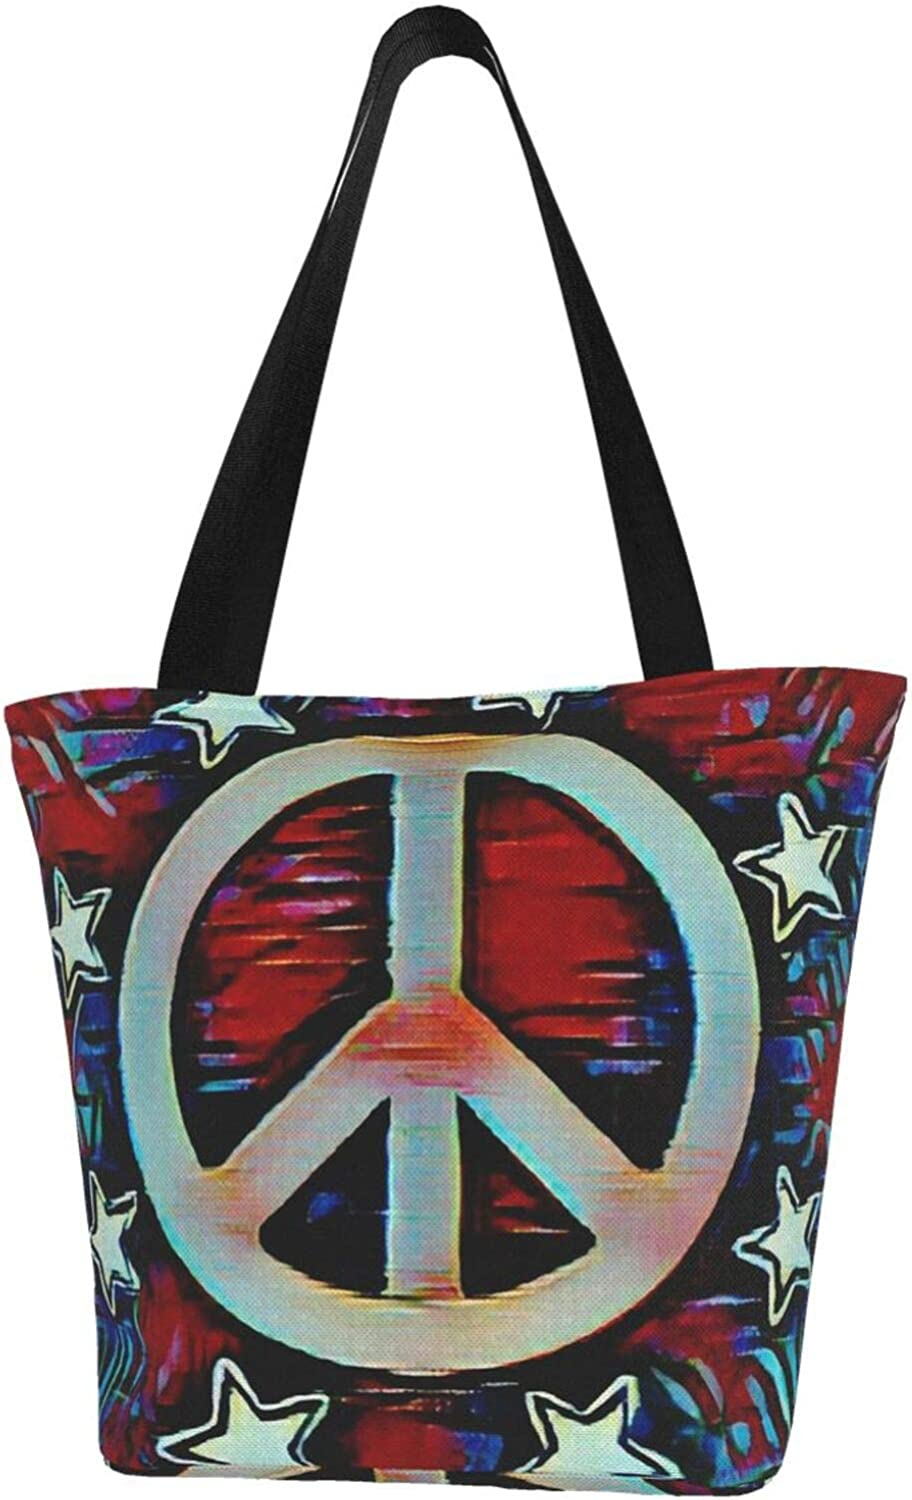 Peace Sign Pentacle Red And Blue Themed Printed Women Canvas Handbag Zipper Shoulder Bag Work Booksbag Tote Purse Leisure Hobo Bag For Shopping